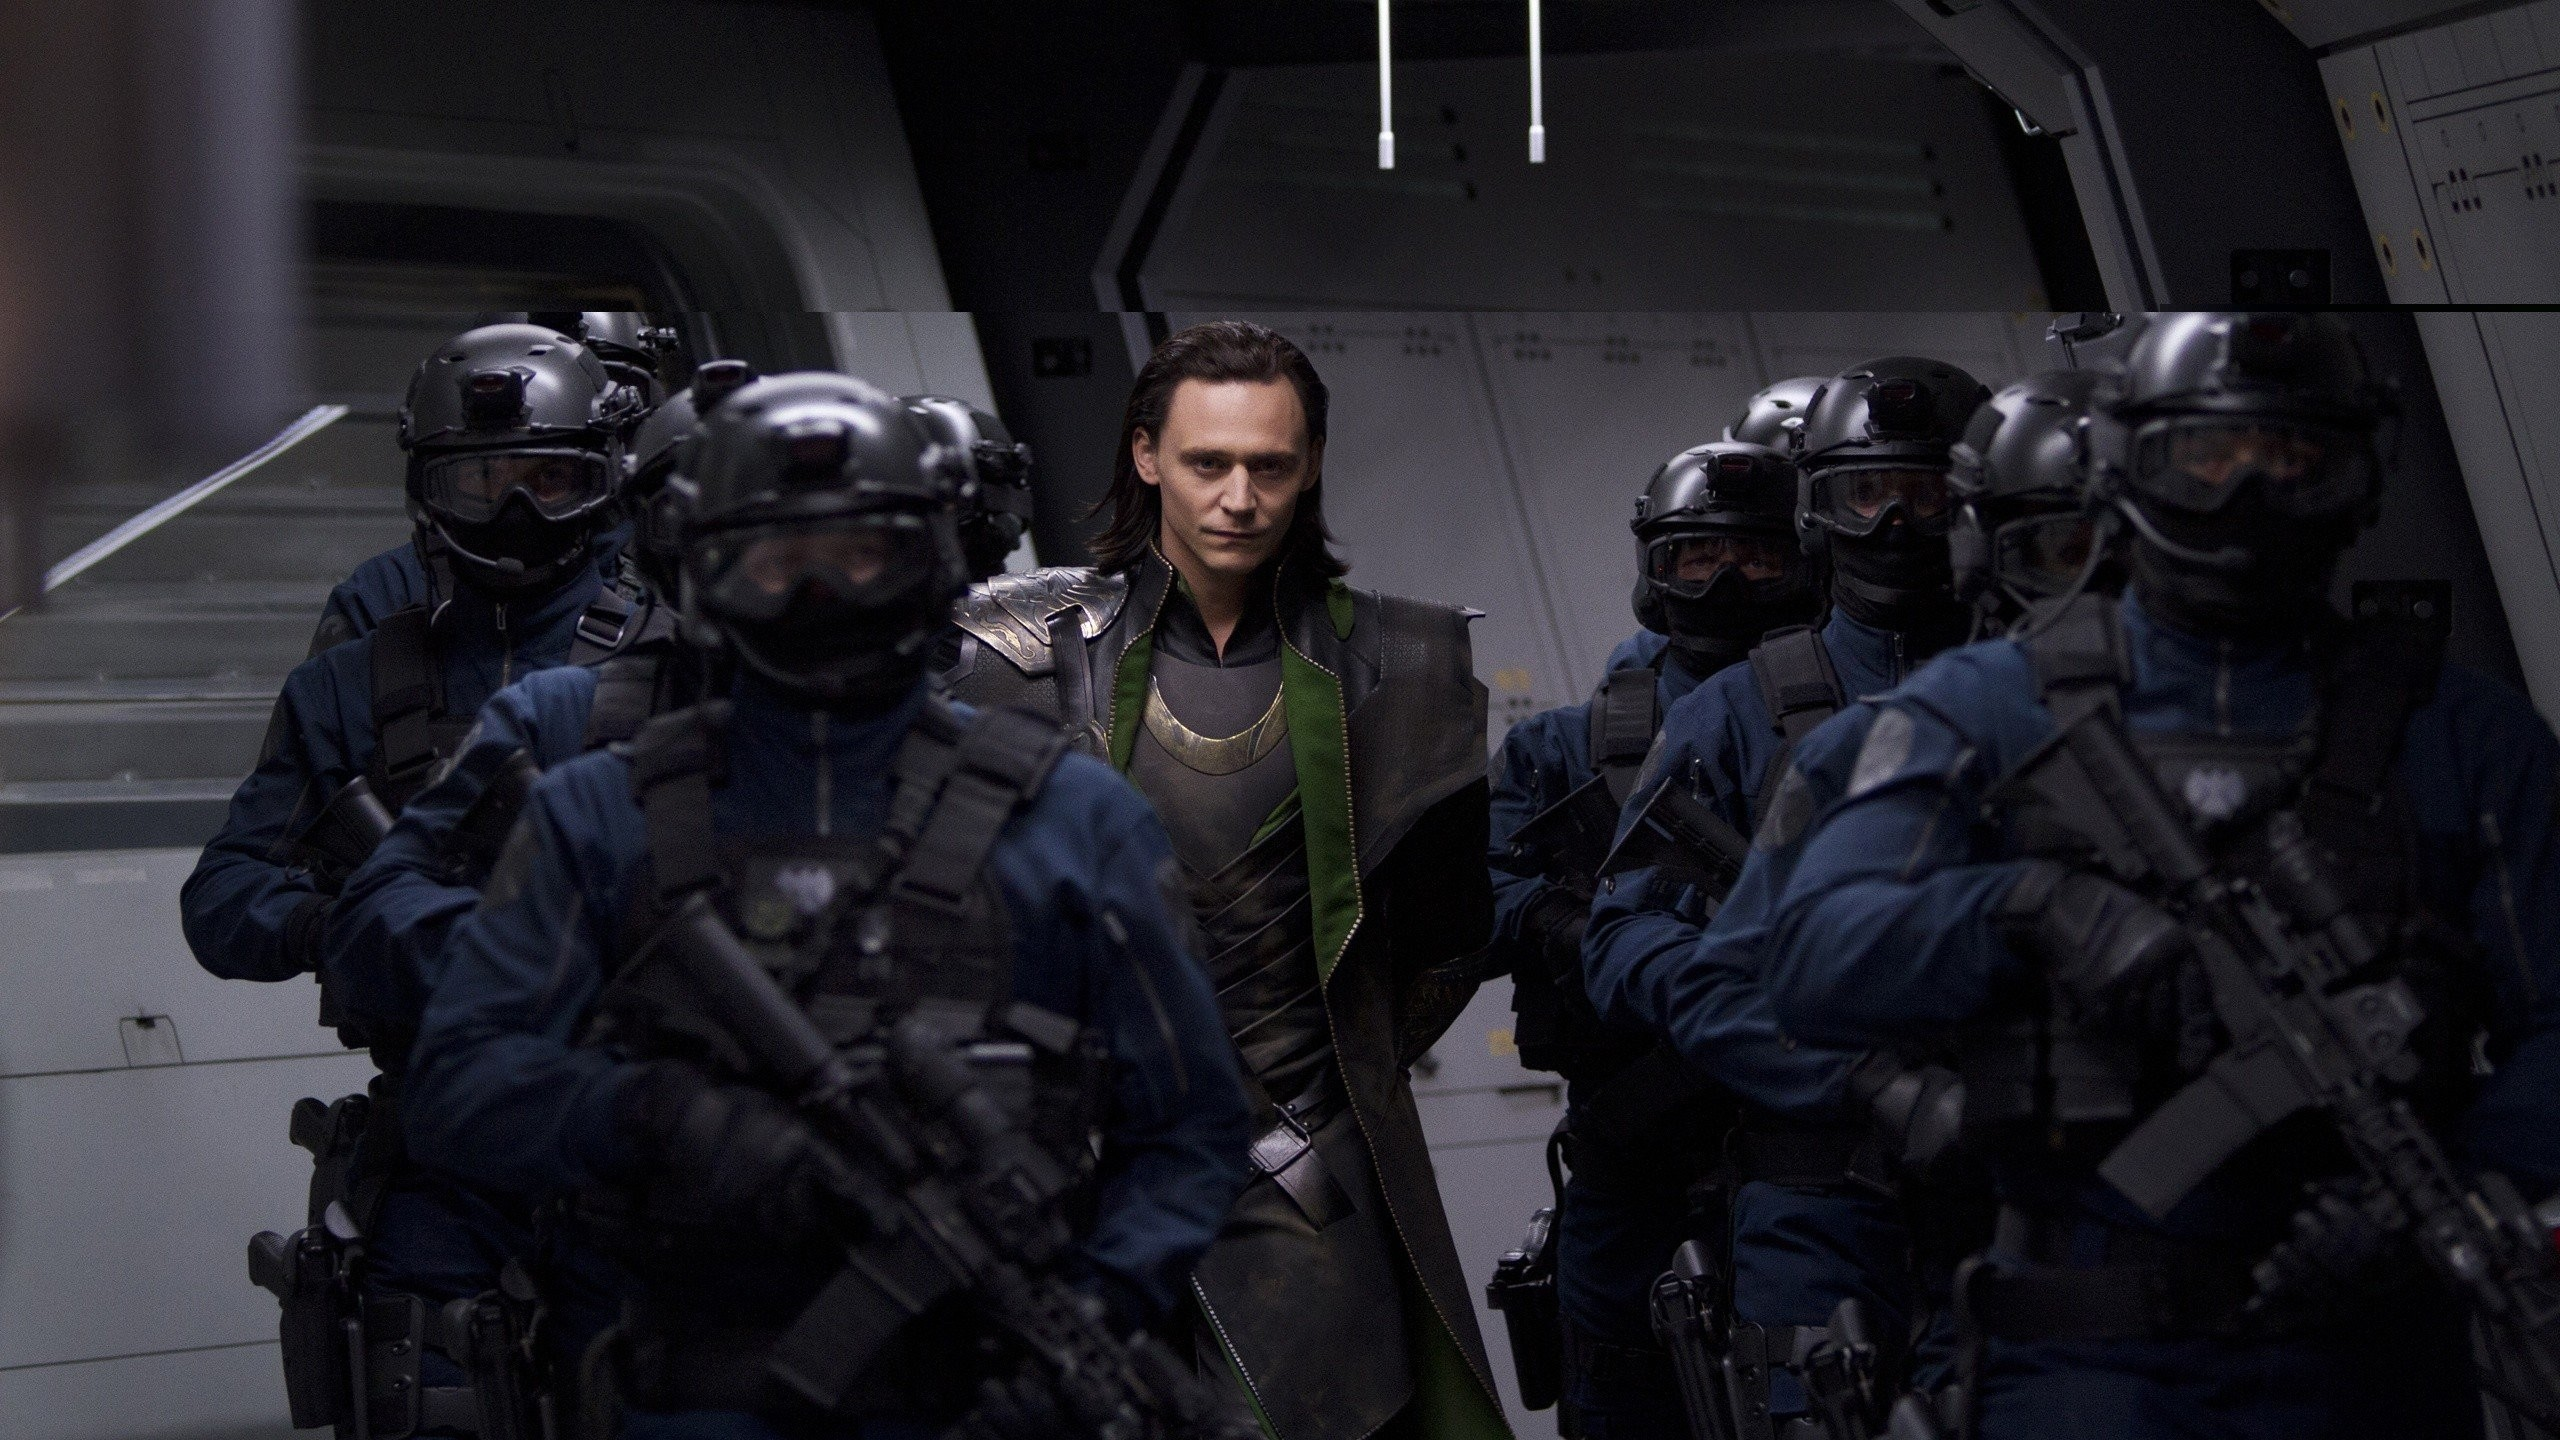 Loki With Guards Avengers - HD Wallpaper